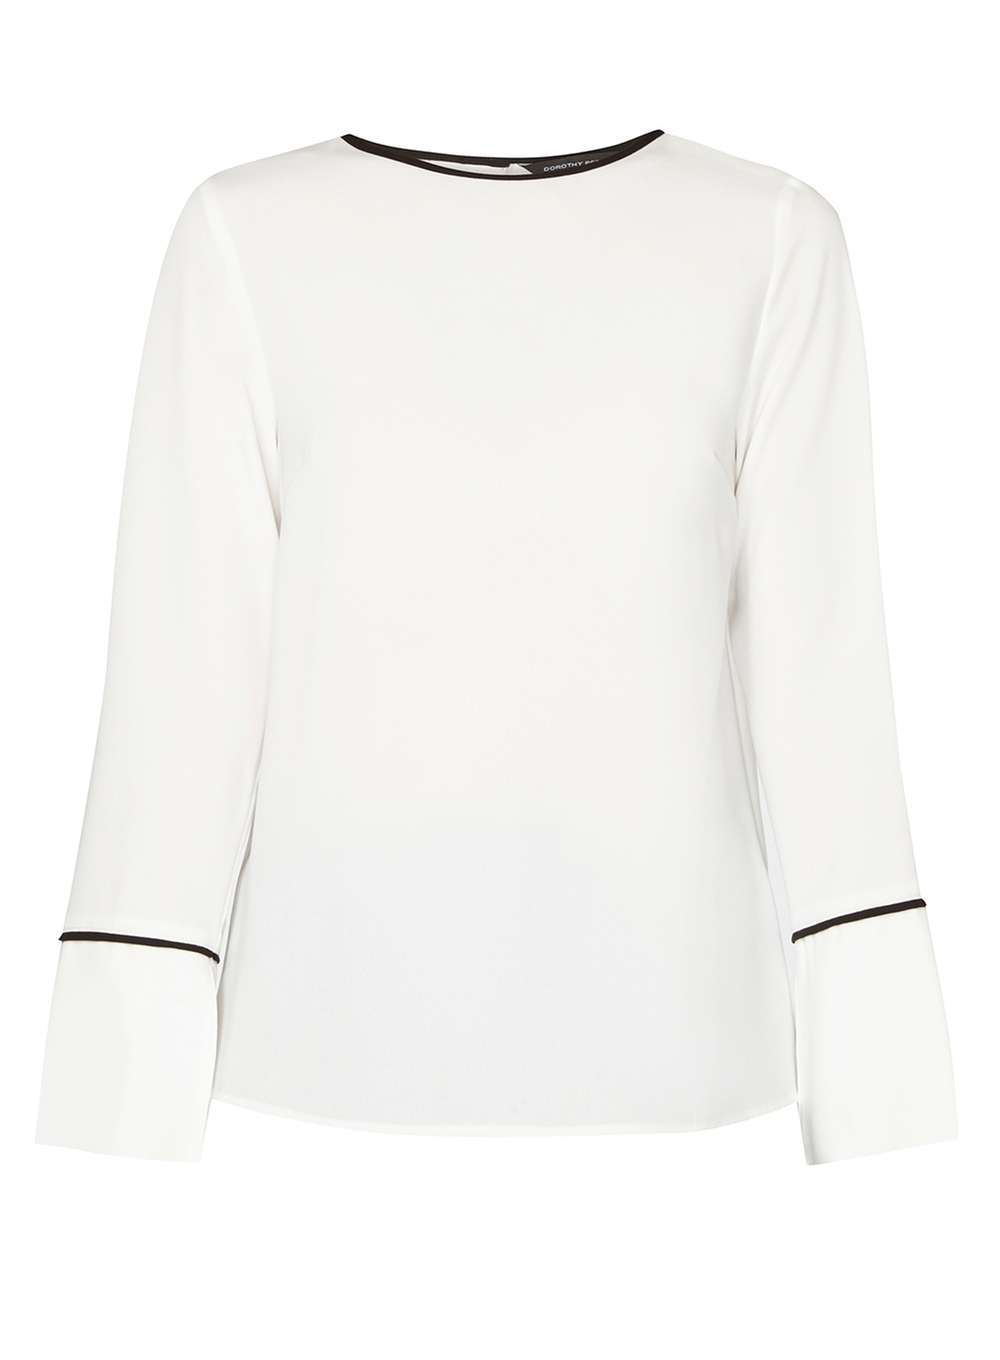 Womens Ivory Longsleeve Wide Cuff Top White - length: below the bottom; style: blouse; predominant colour: white; secondary colour: black; occasions: casual, creative work; fibres: polyester/polyamide - 100%; fit: straight cut; neckline: crew; sleeve length: long sleeve; sleeve style: standard; pattern type: fabric; pattern size: light/subtle; pattern: colourblock; texture group: other - light to midweight; season: a/w 2016